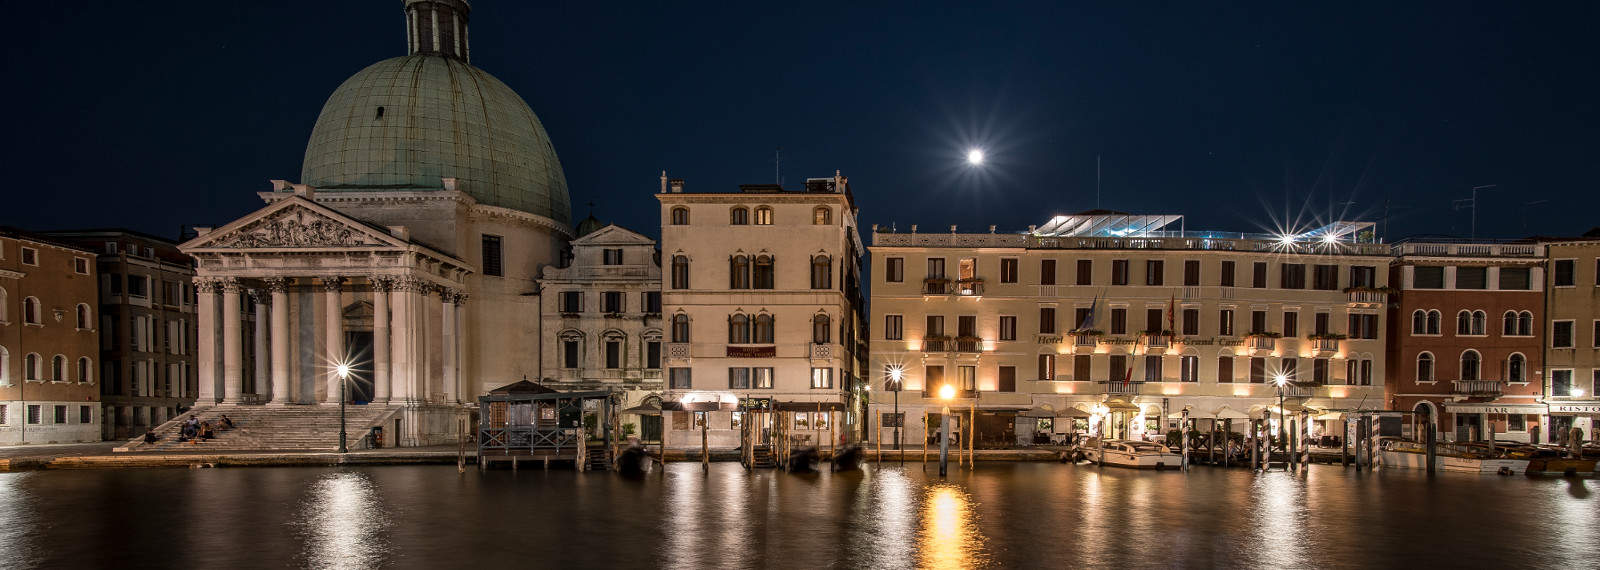 Hotel Carlton On The Grand Canal - Official Site - 4 Stars Hotel in Venice